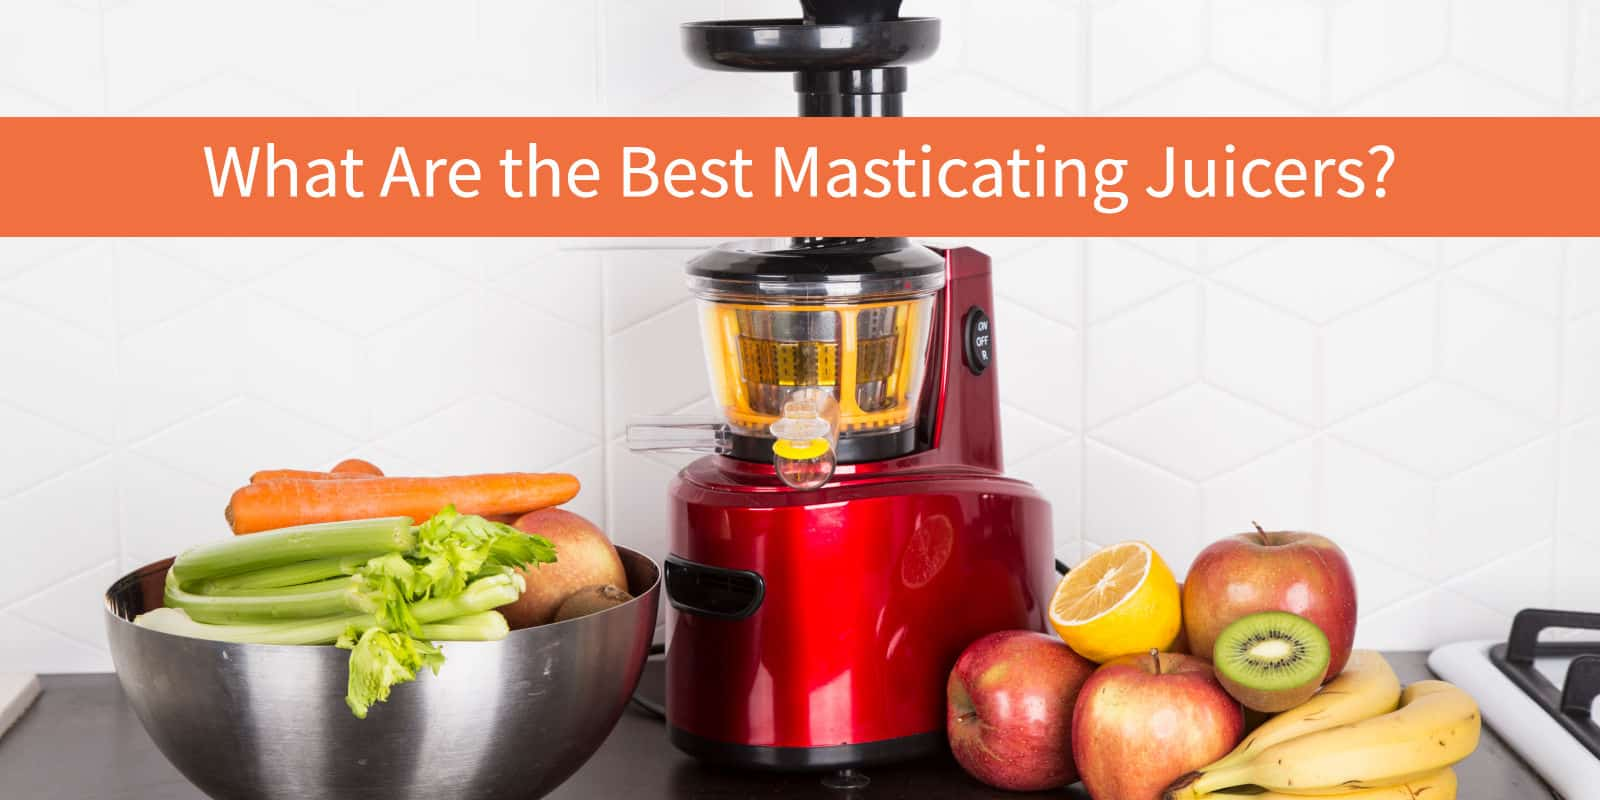 The Top 10 Best Masticating Juicers of 2017 vegByte